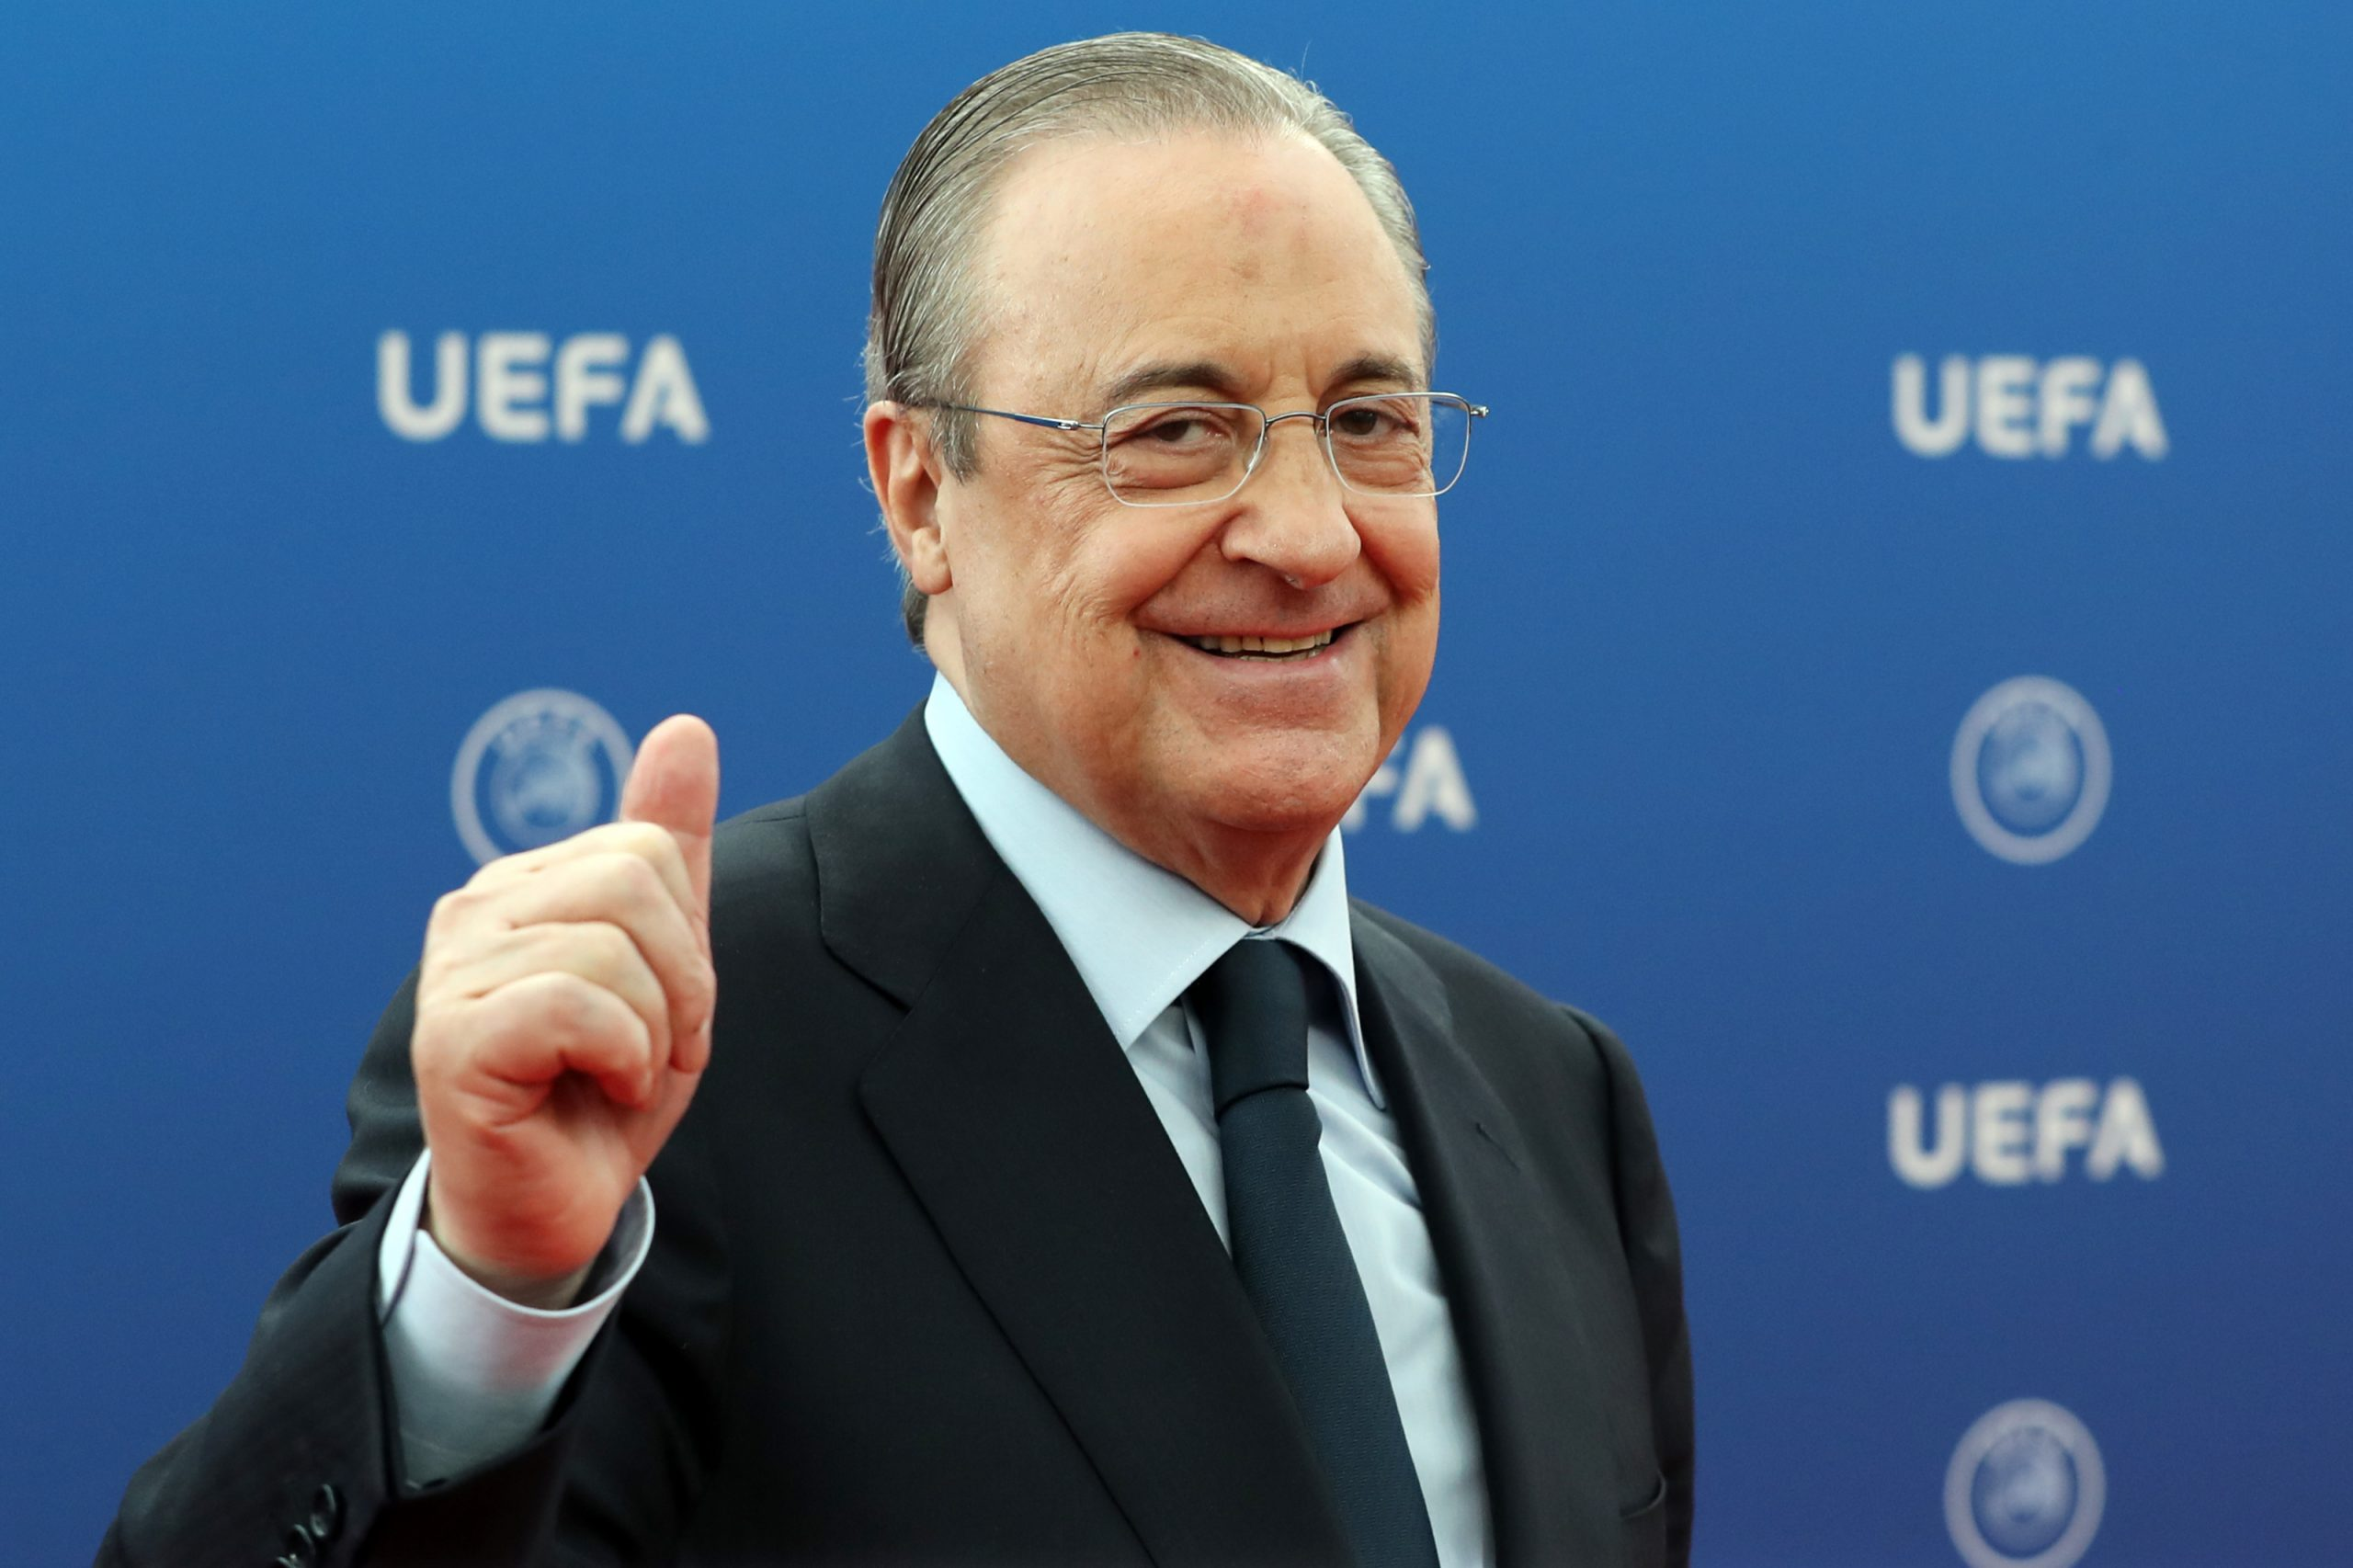 New battle between UEFA and the Trio of European Super League coup